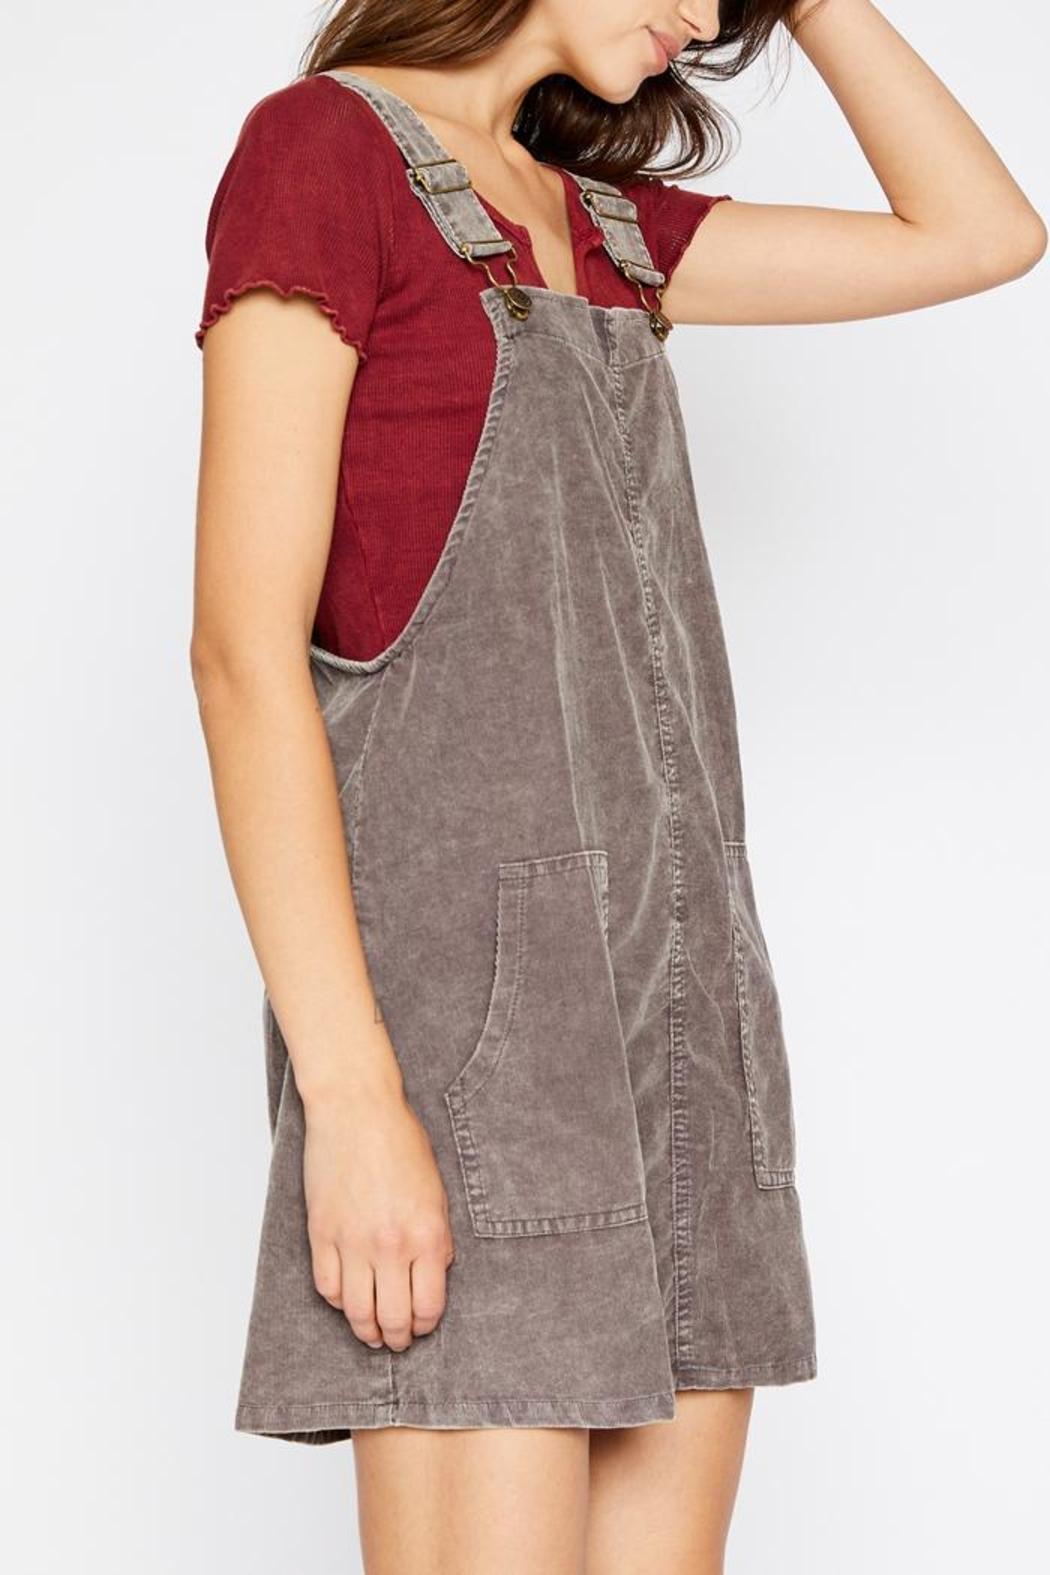 41d9ec877d1 Sadie   Sage Corduroy Overall Dress from New York by Luna — Shoptiques